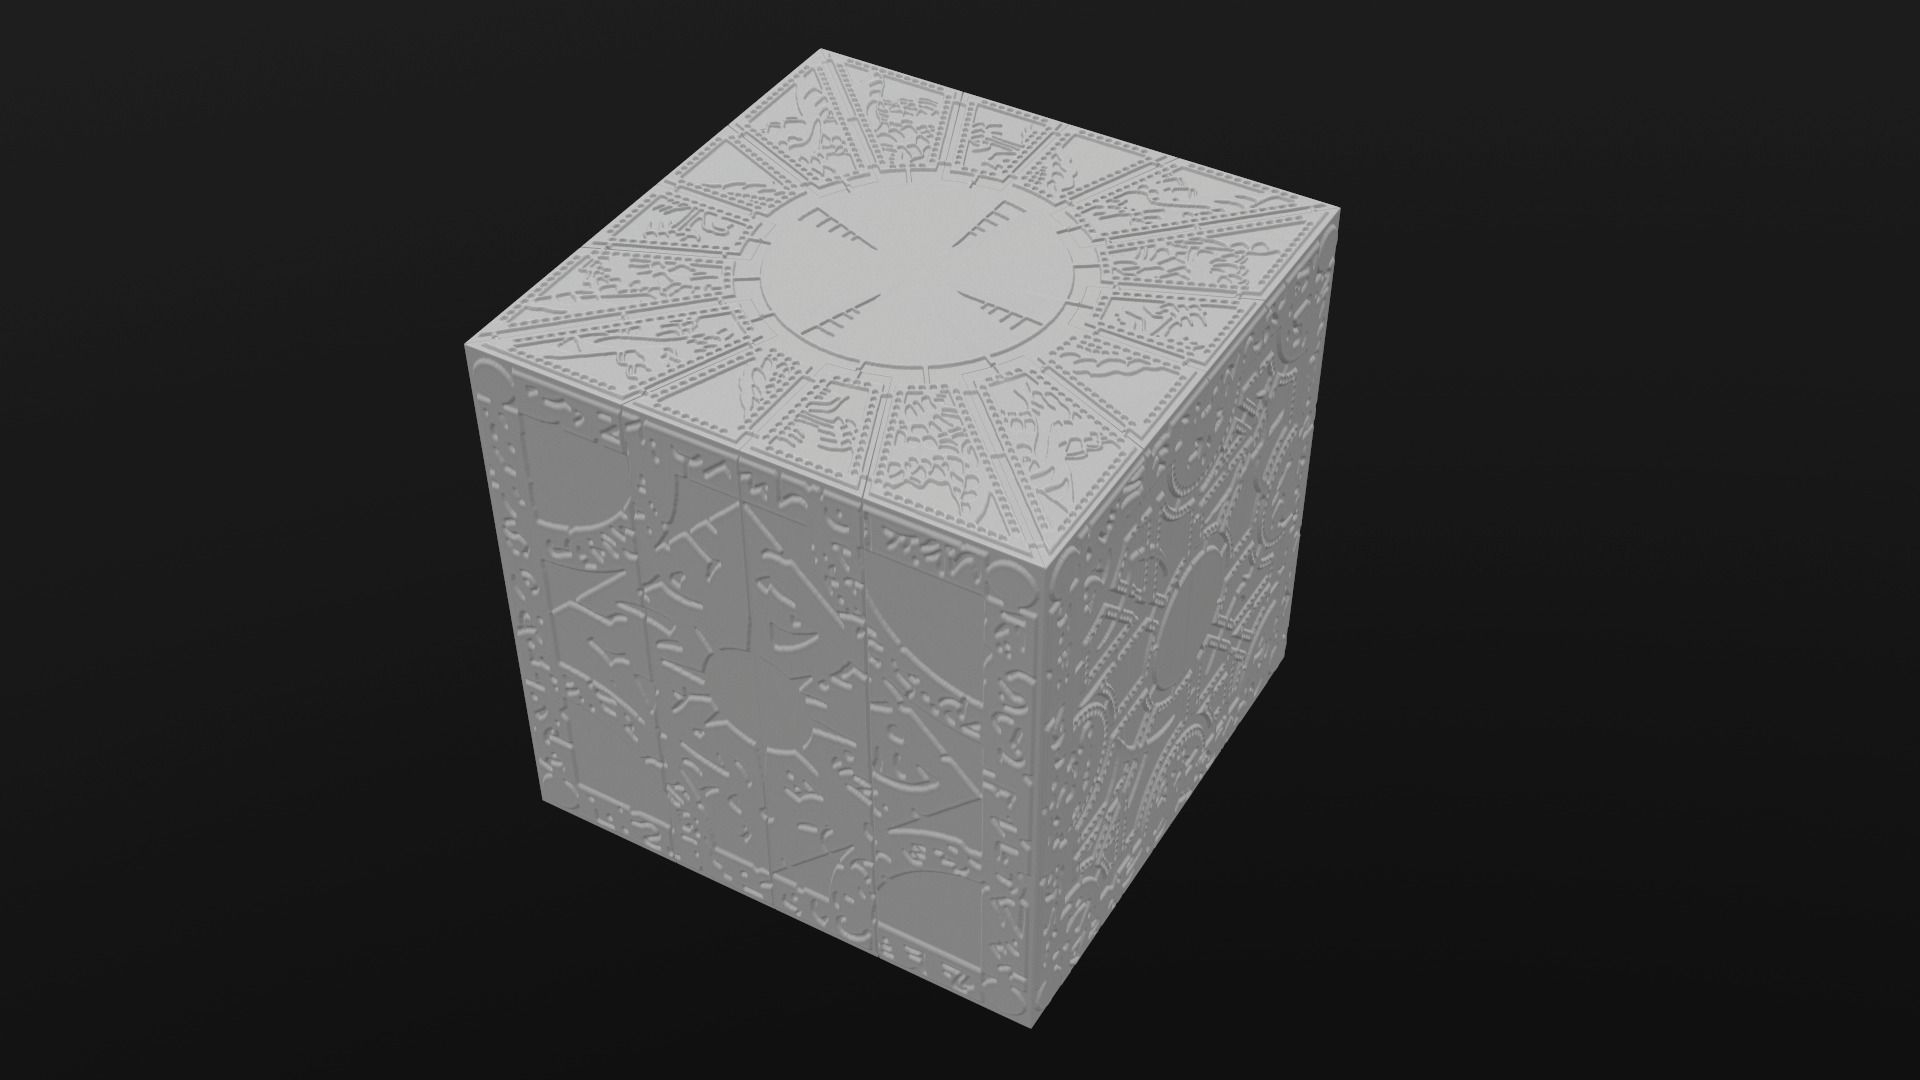 Printable Hellraiser Puzzle Box Lament - Printable Hellraiser Puzzle Box